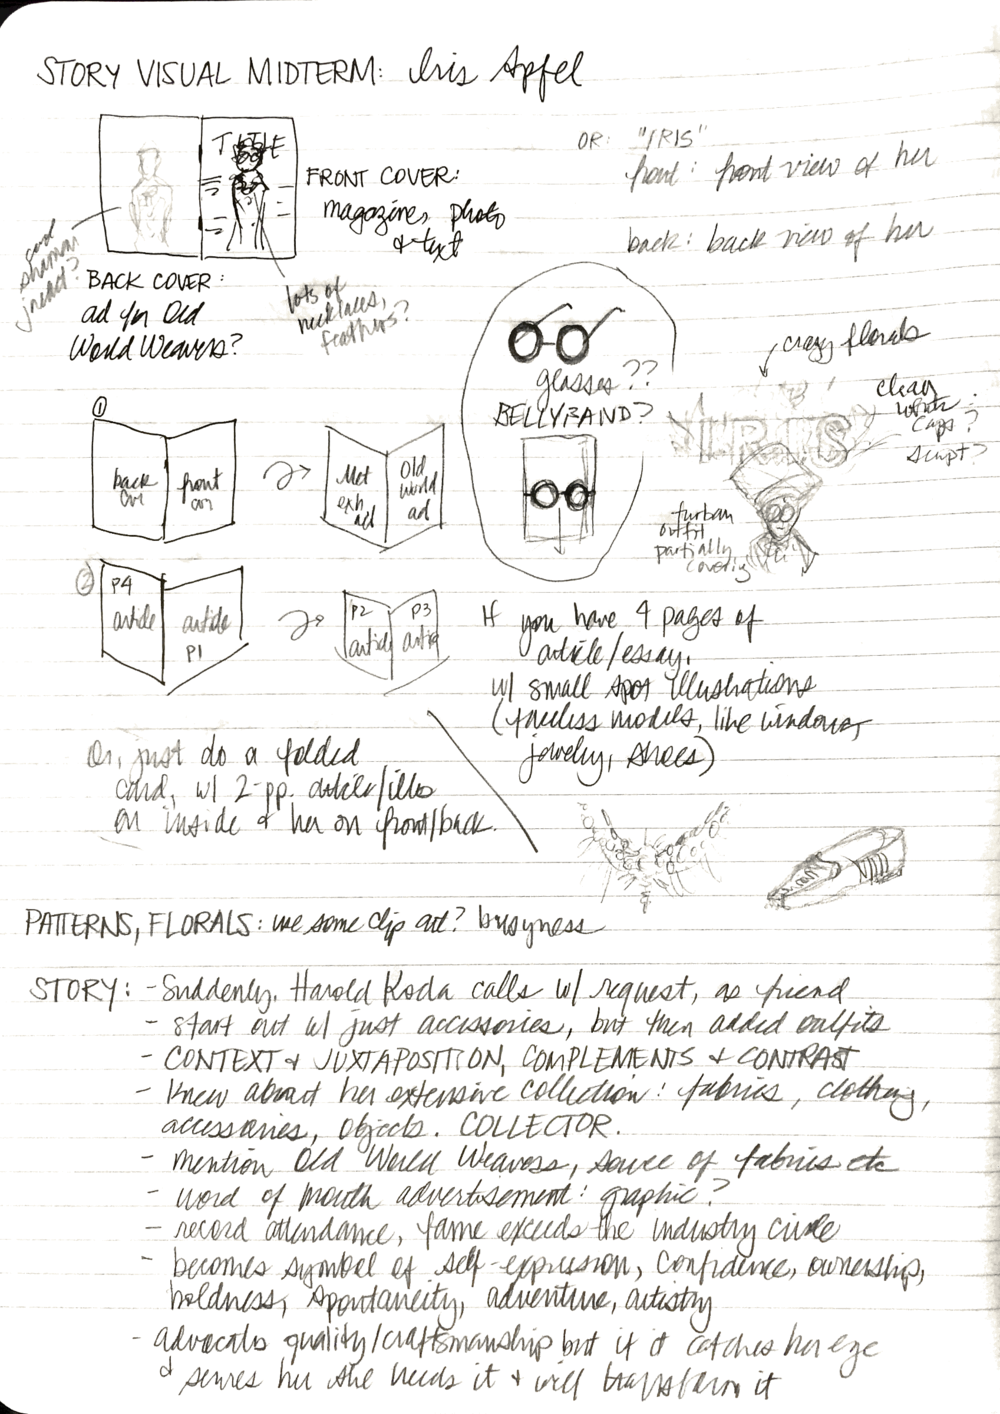 Notes while brainstorming